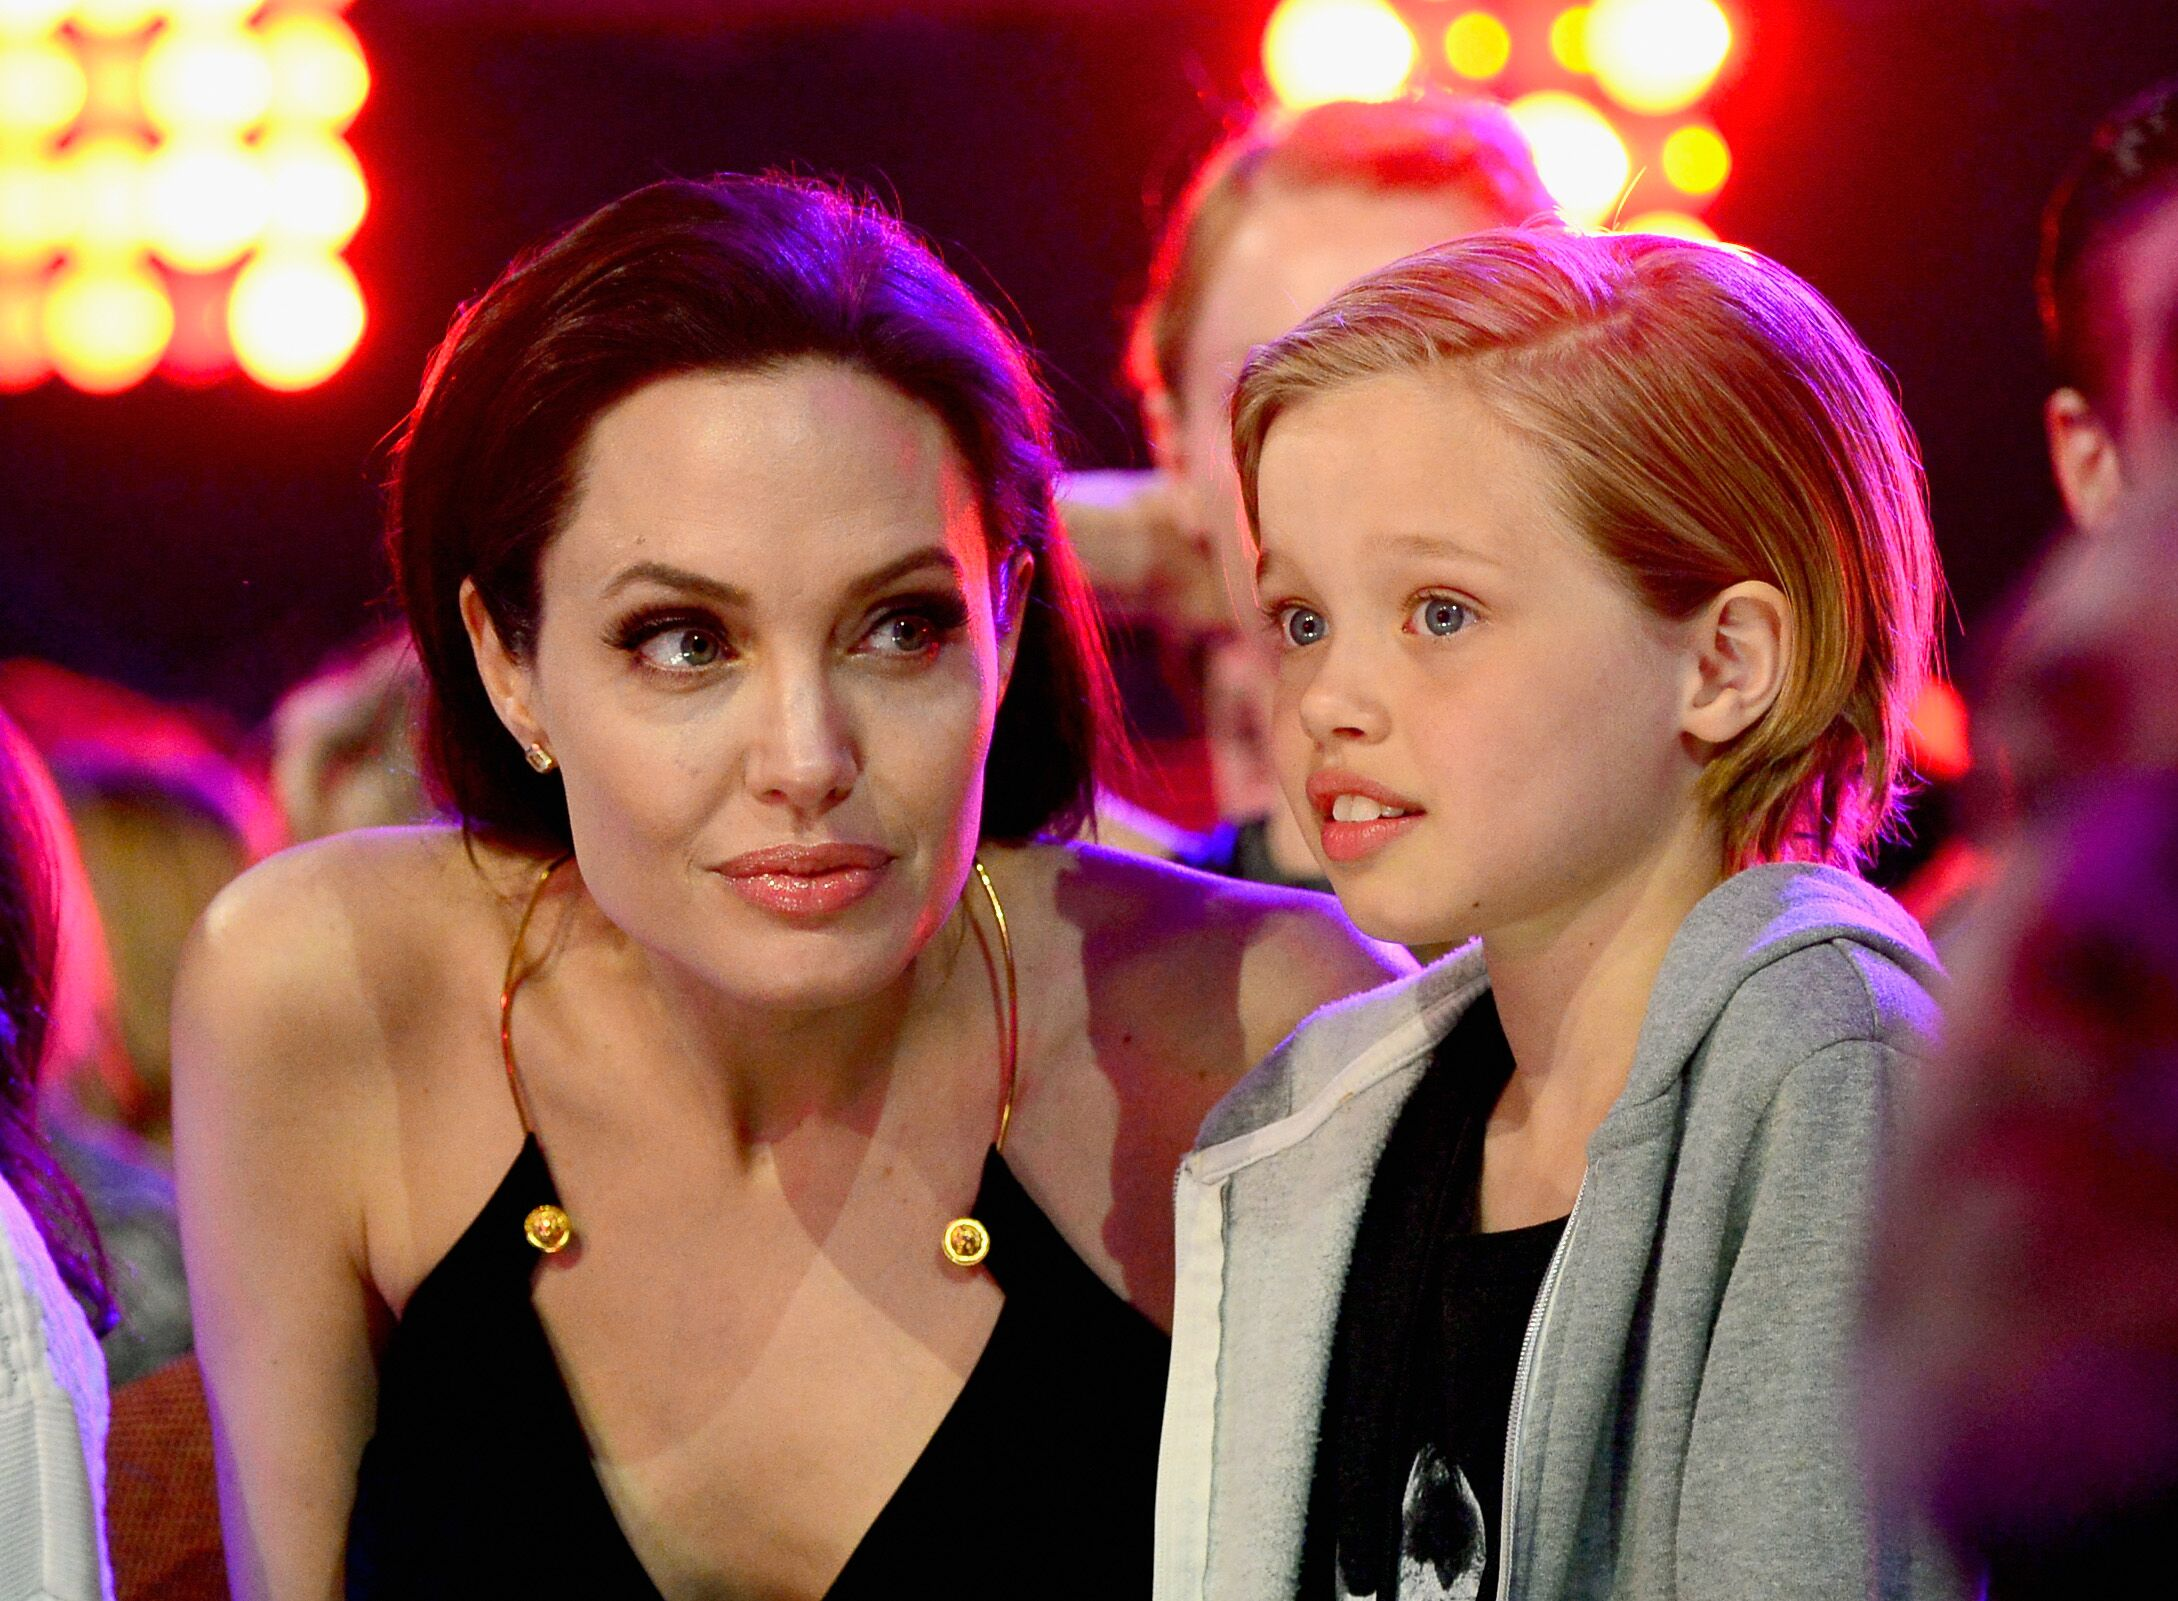 Angelina Jolie and Shiloh Nouvel Jolie-Pitt at the Nickelodeon's 28th Annual Kids' Choice Awards in 2015 | Source: Getty Images